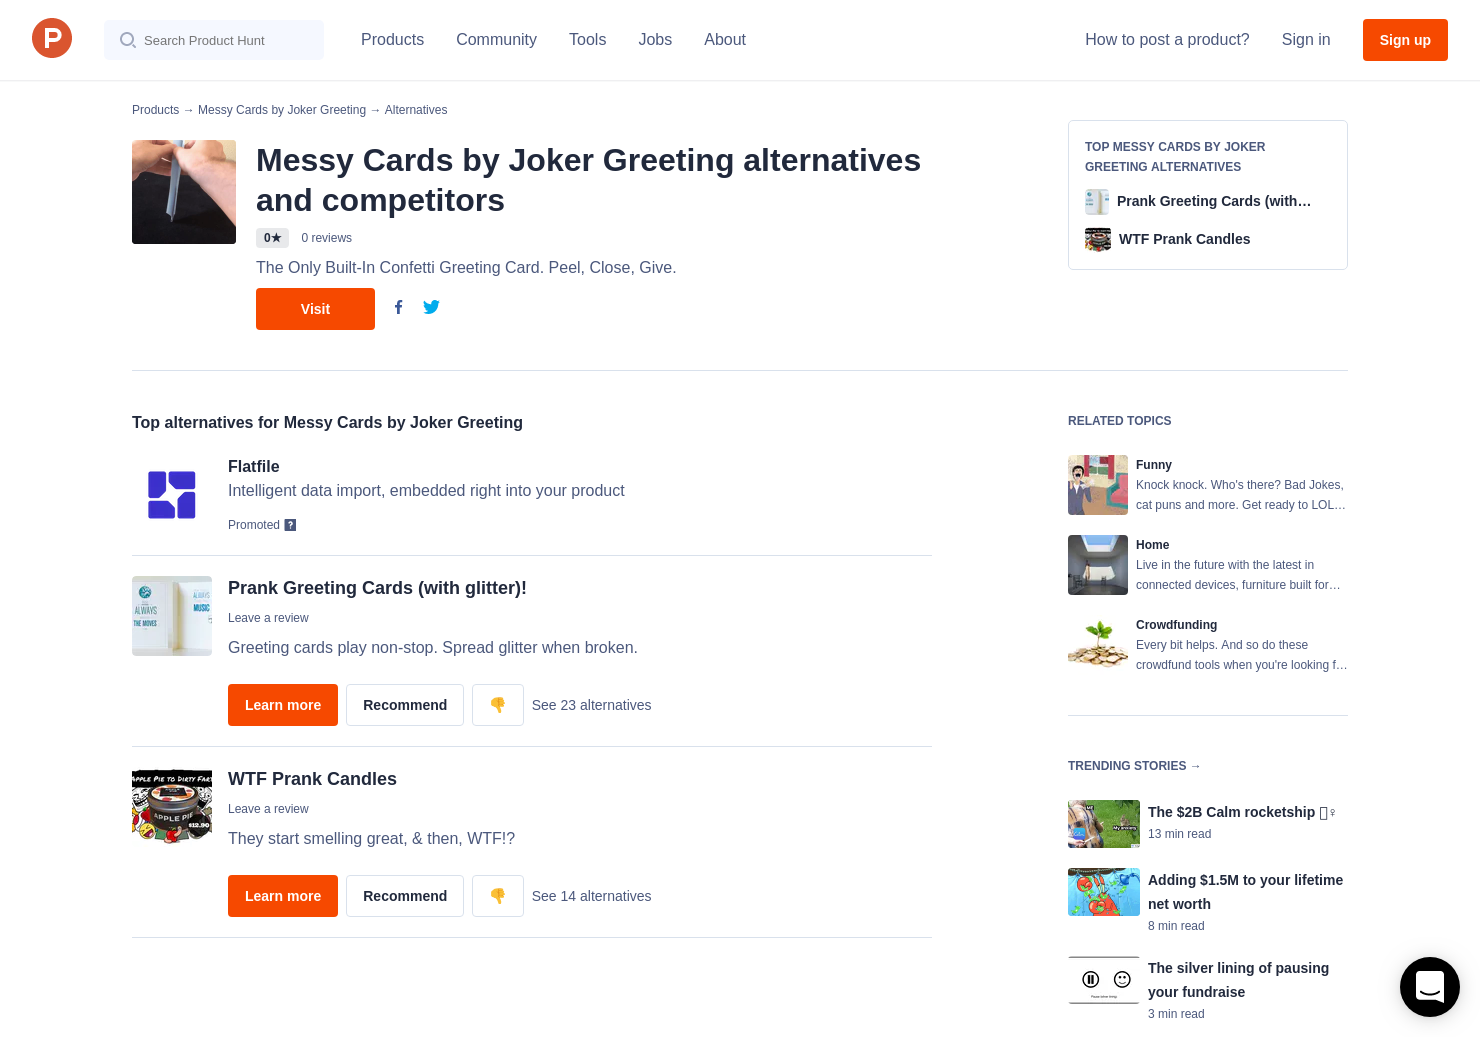 2 alternatives to messy cards by joker greeting product hunt m4hsunfo